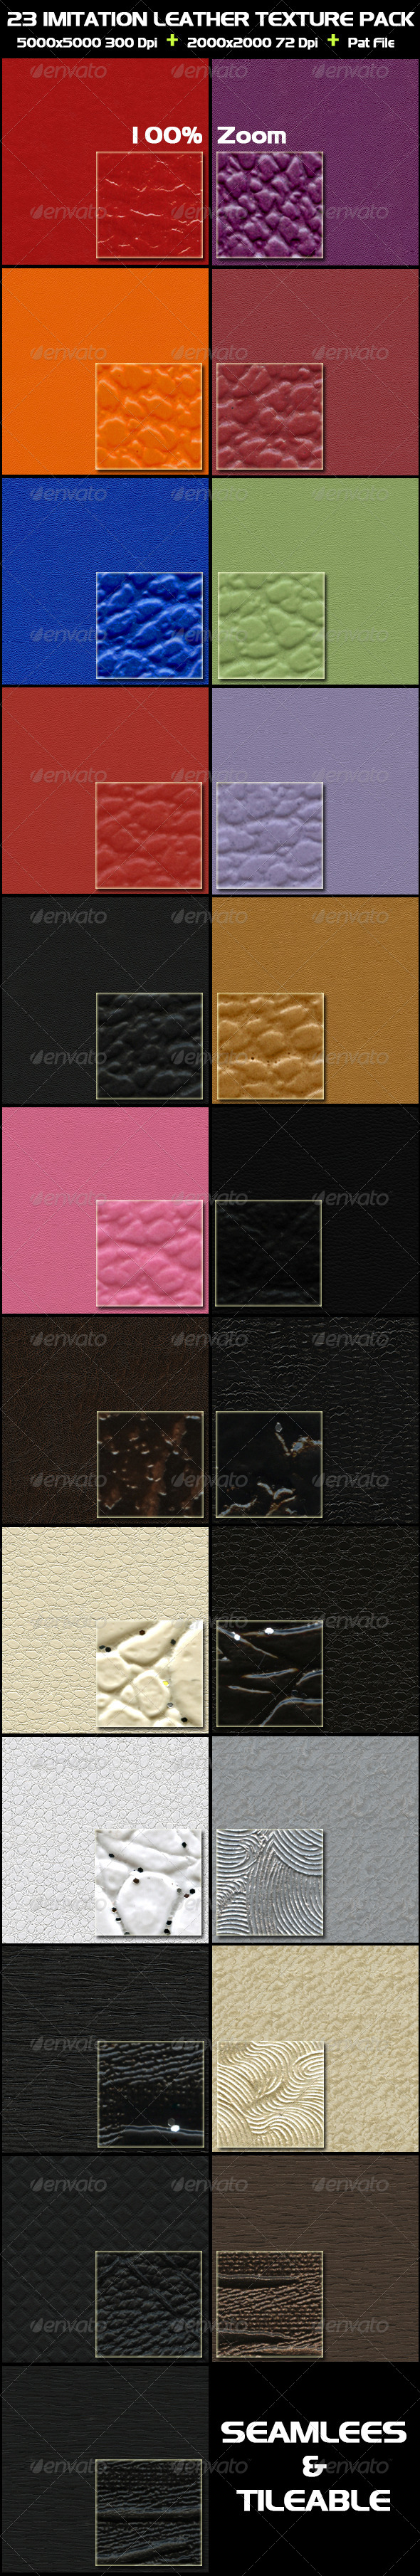 GraphicRiver 23 Imitation Leather Texture Pack 4468821